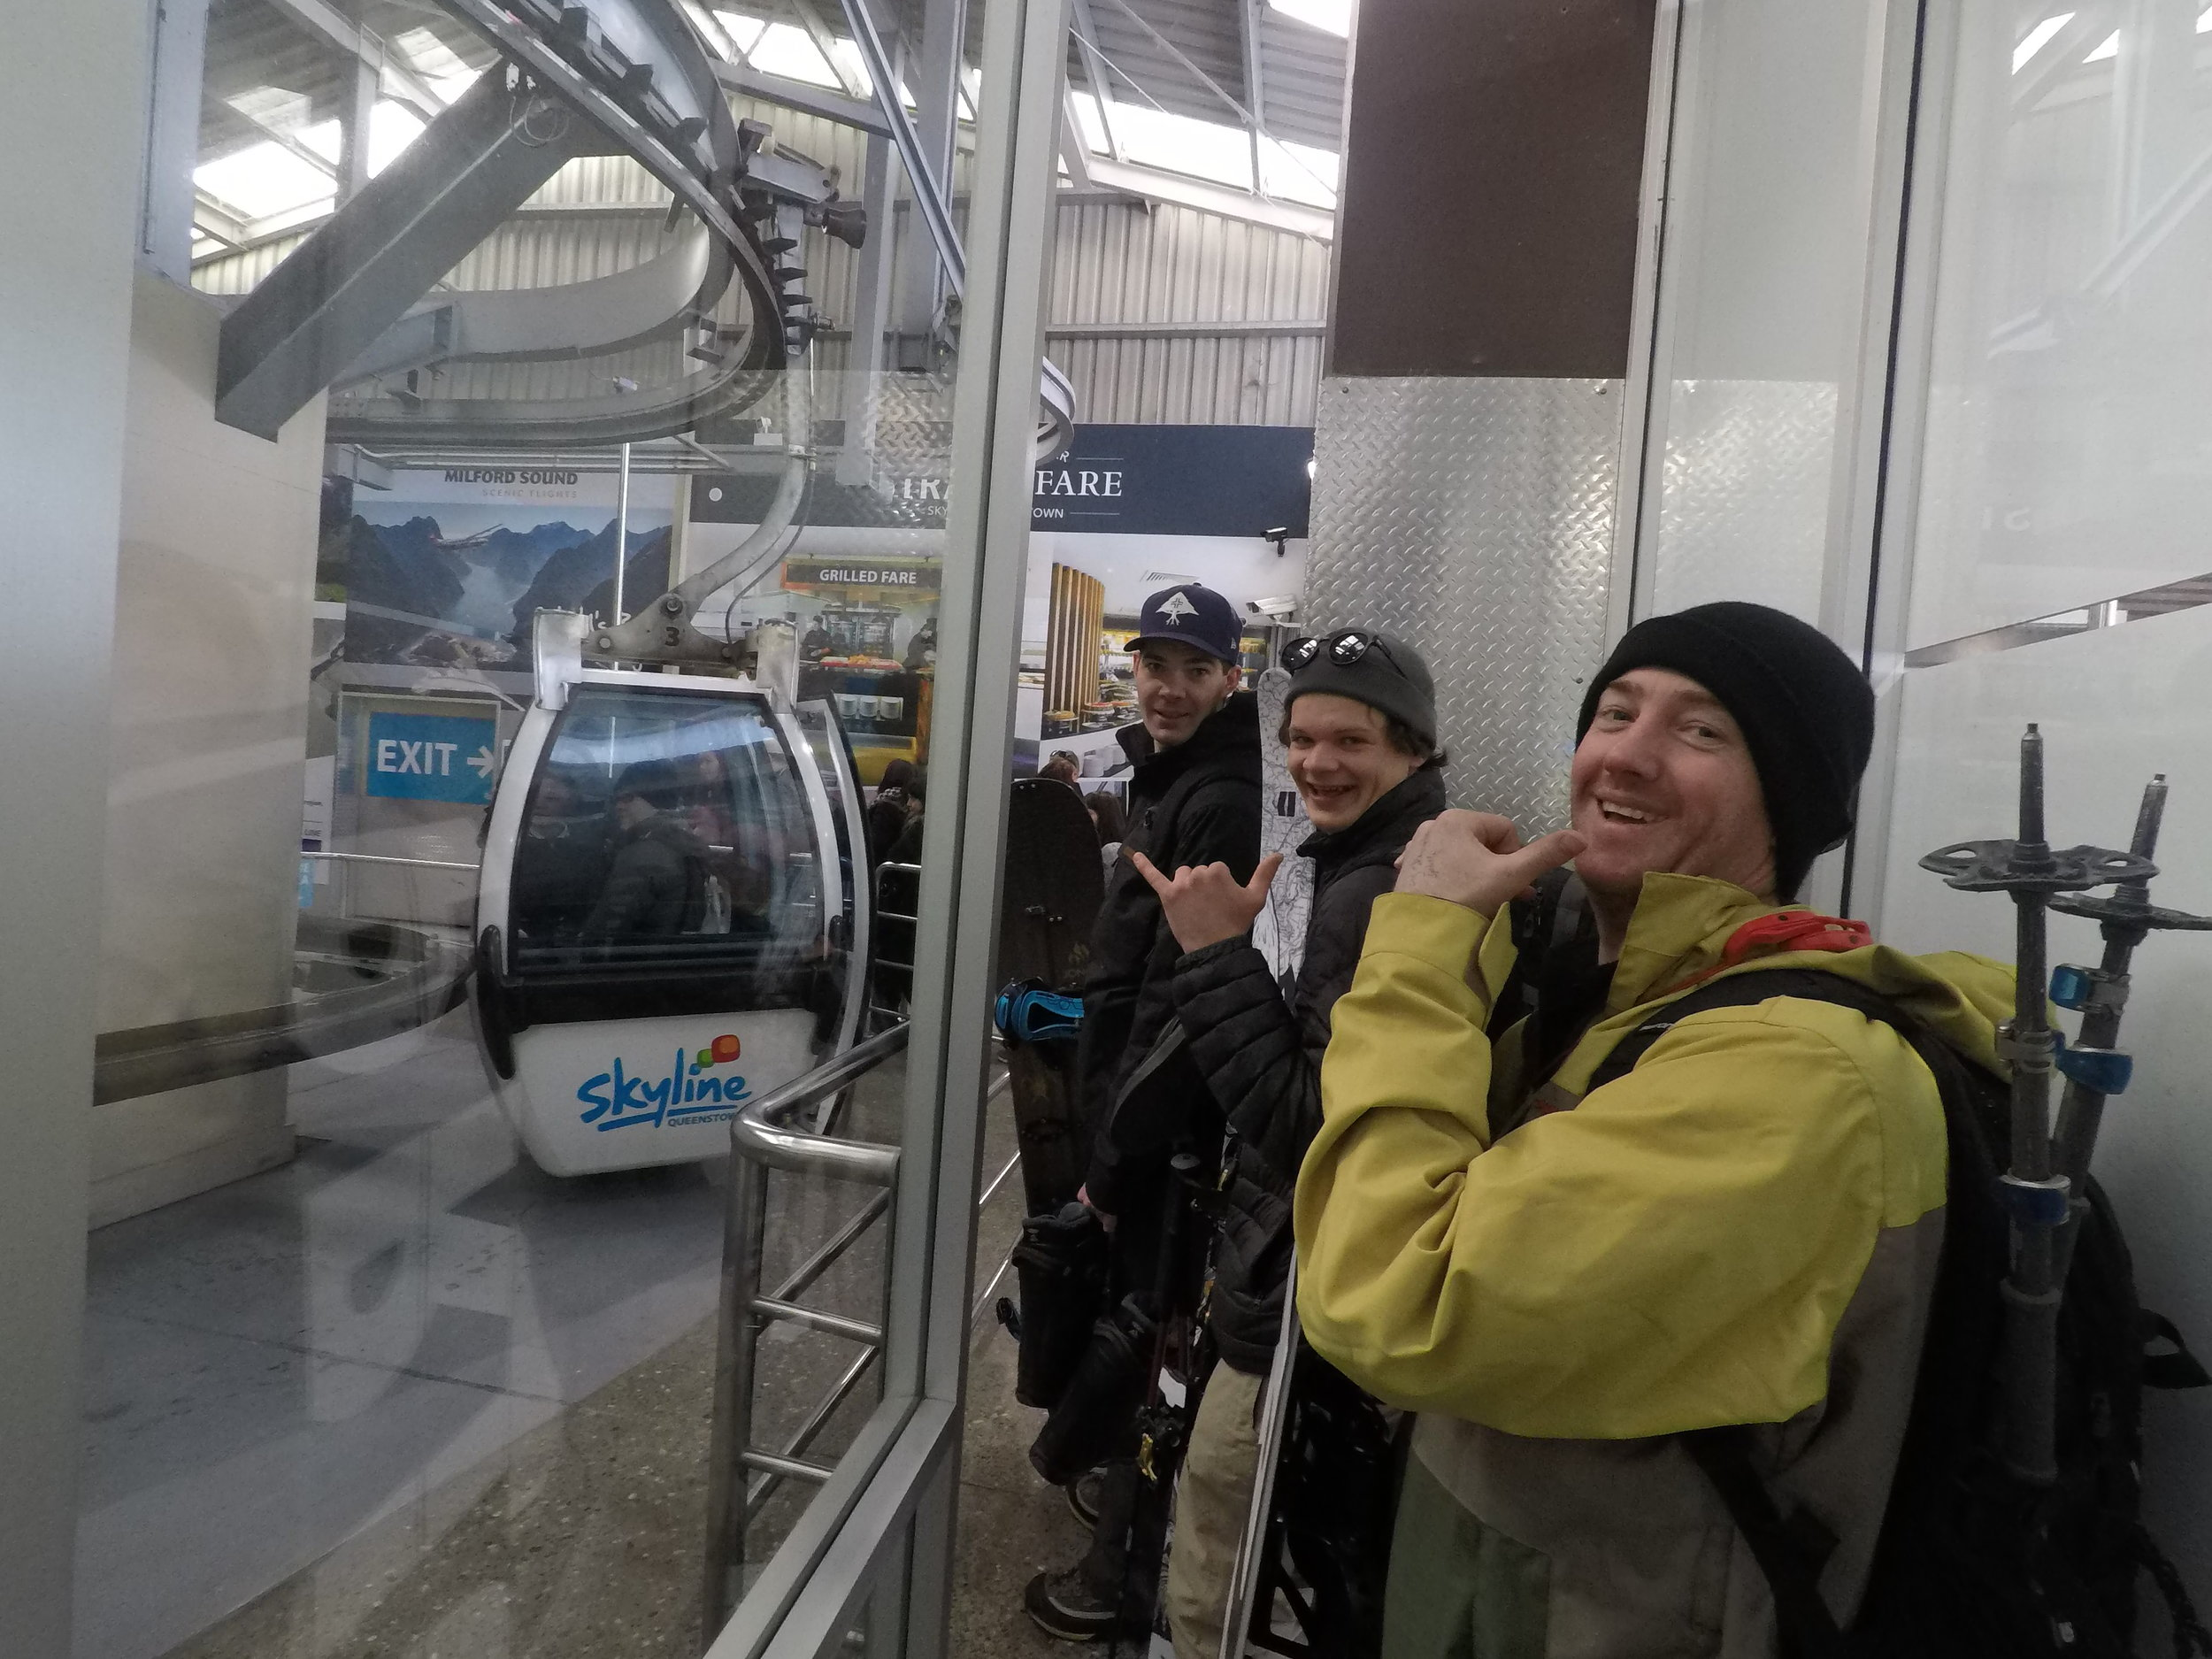 A quick vertical rise of 450 meters using Skyline's gondola